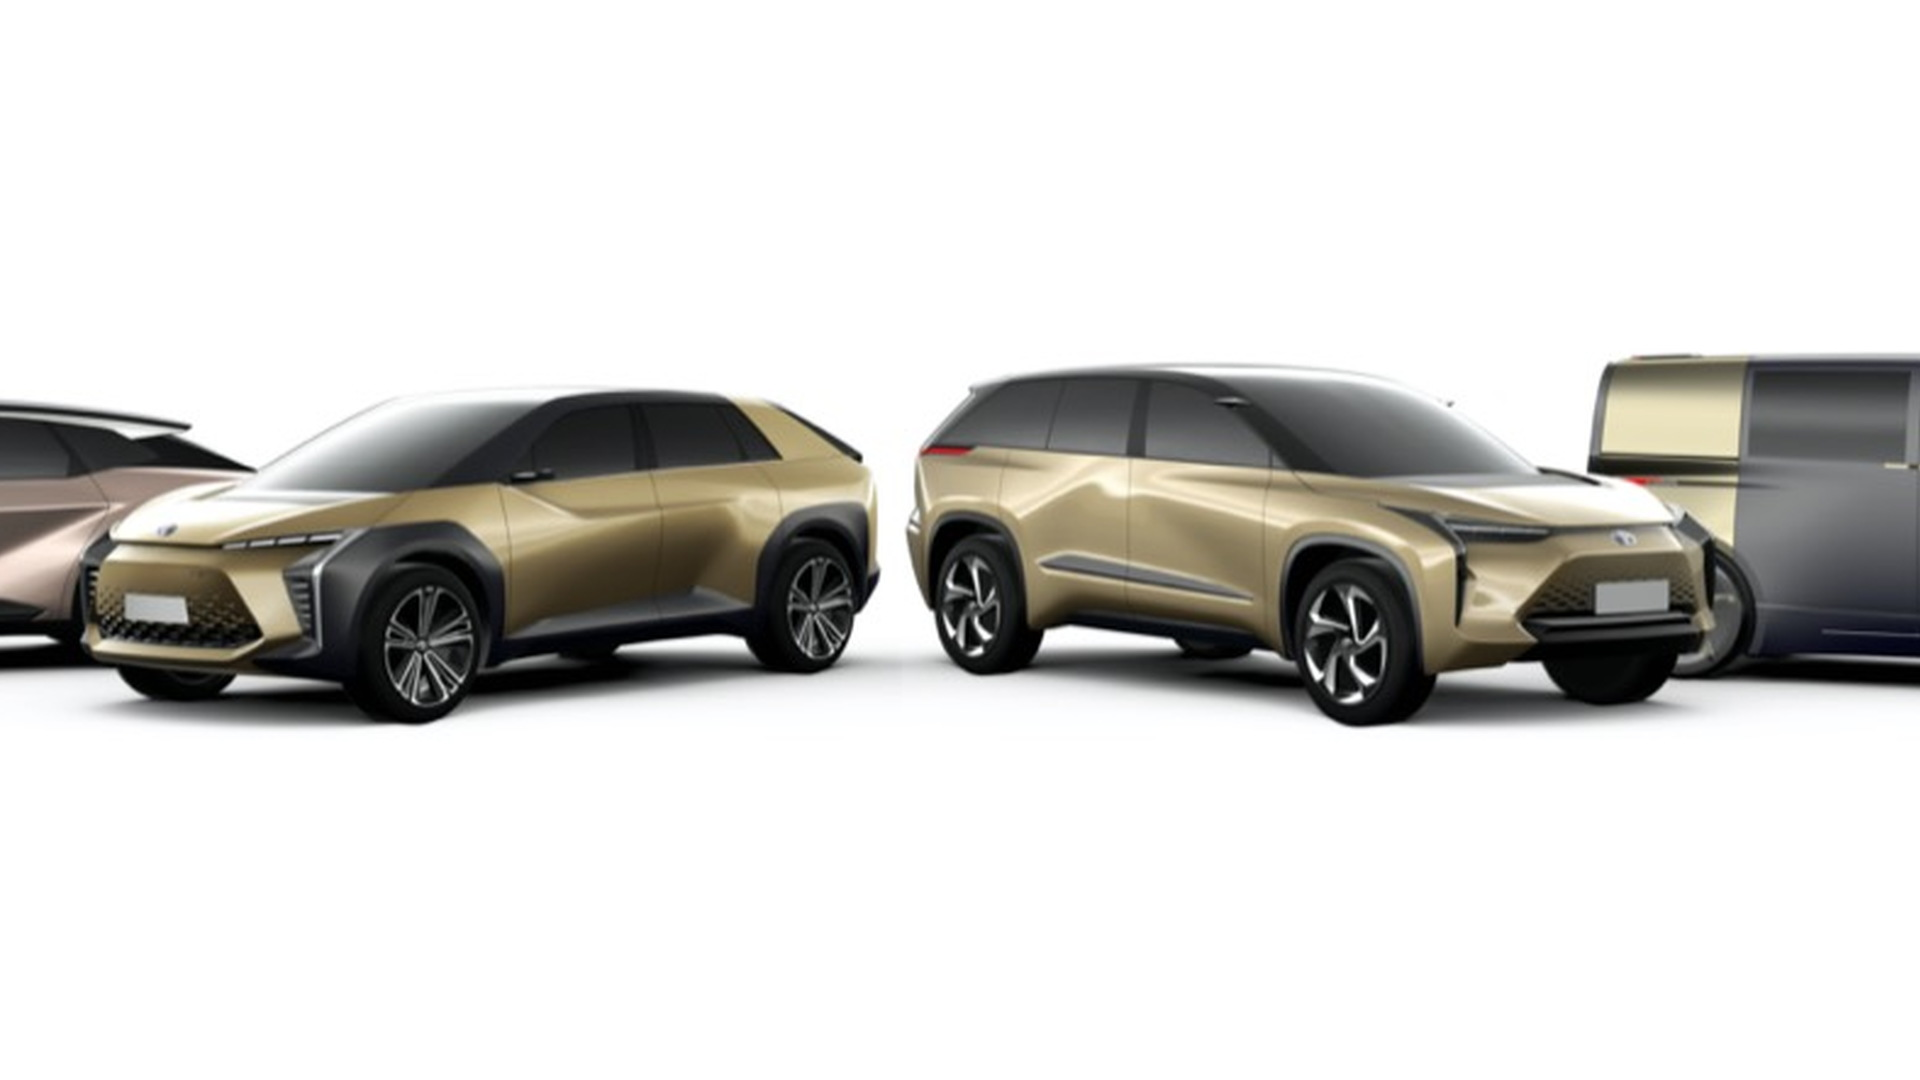 Toyota future electric vehicle designs  -  2019